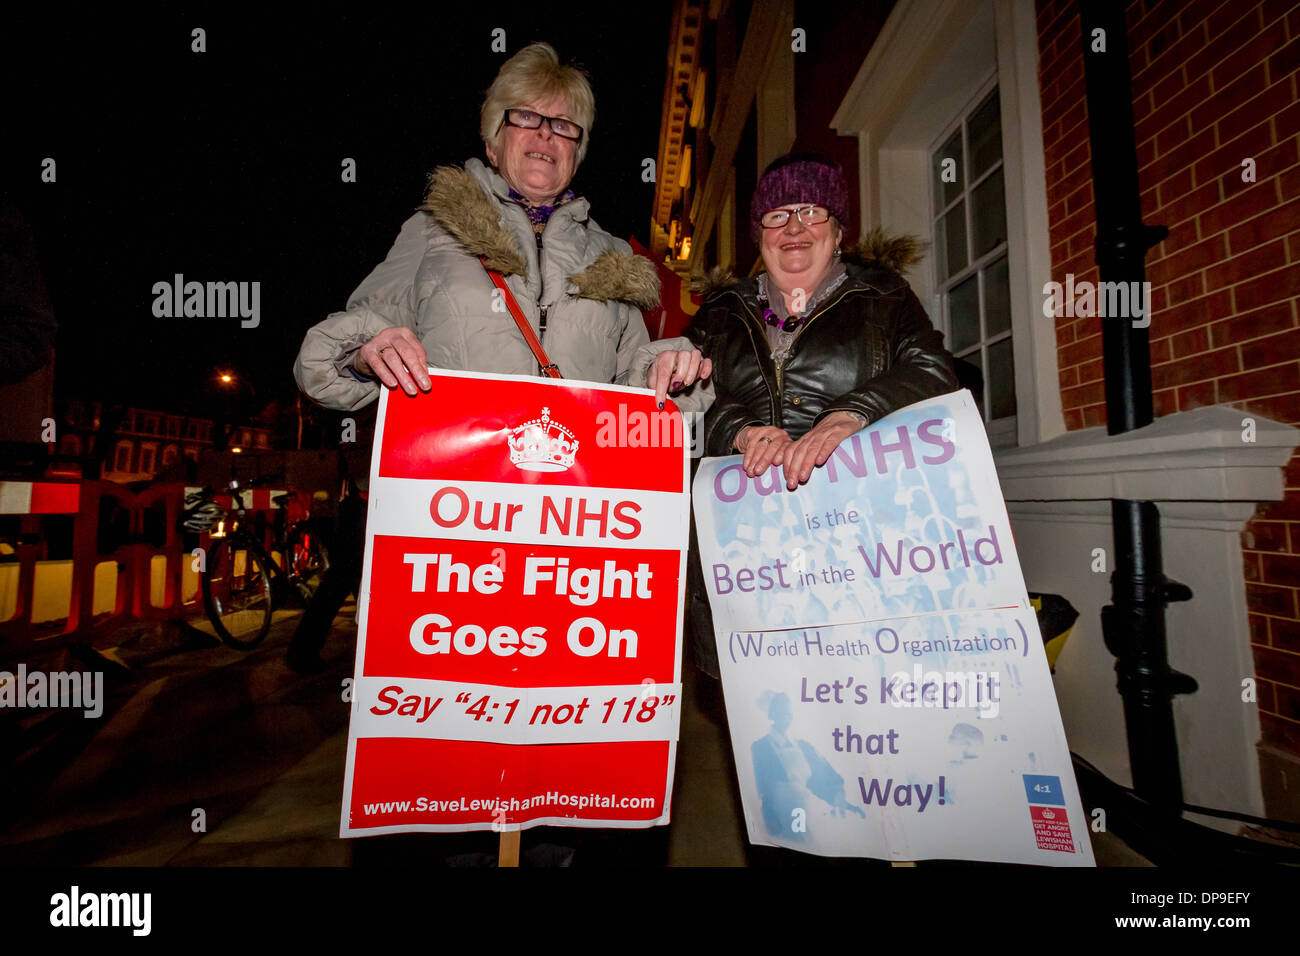 NHS Protest outside BBC TV Question Time in Lewisham, London, UK. Stock Photo